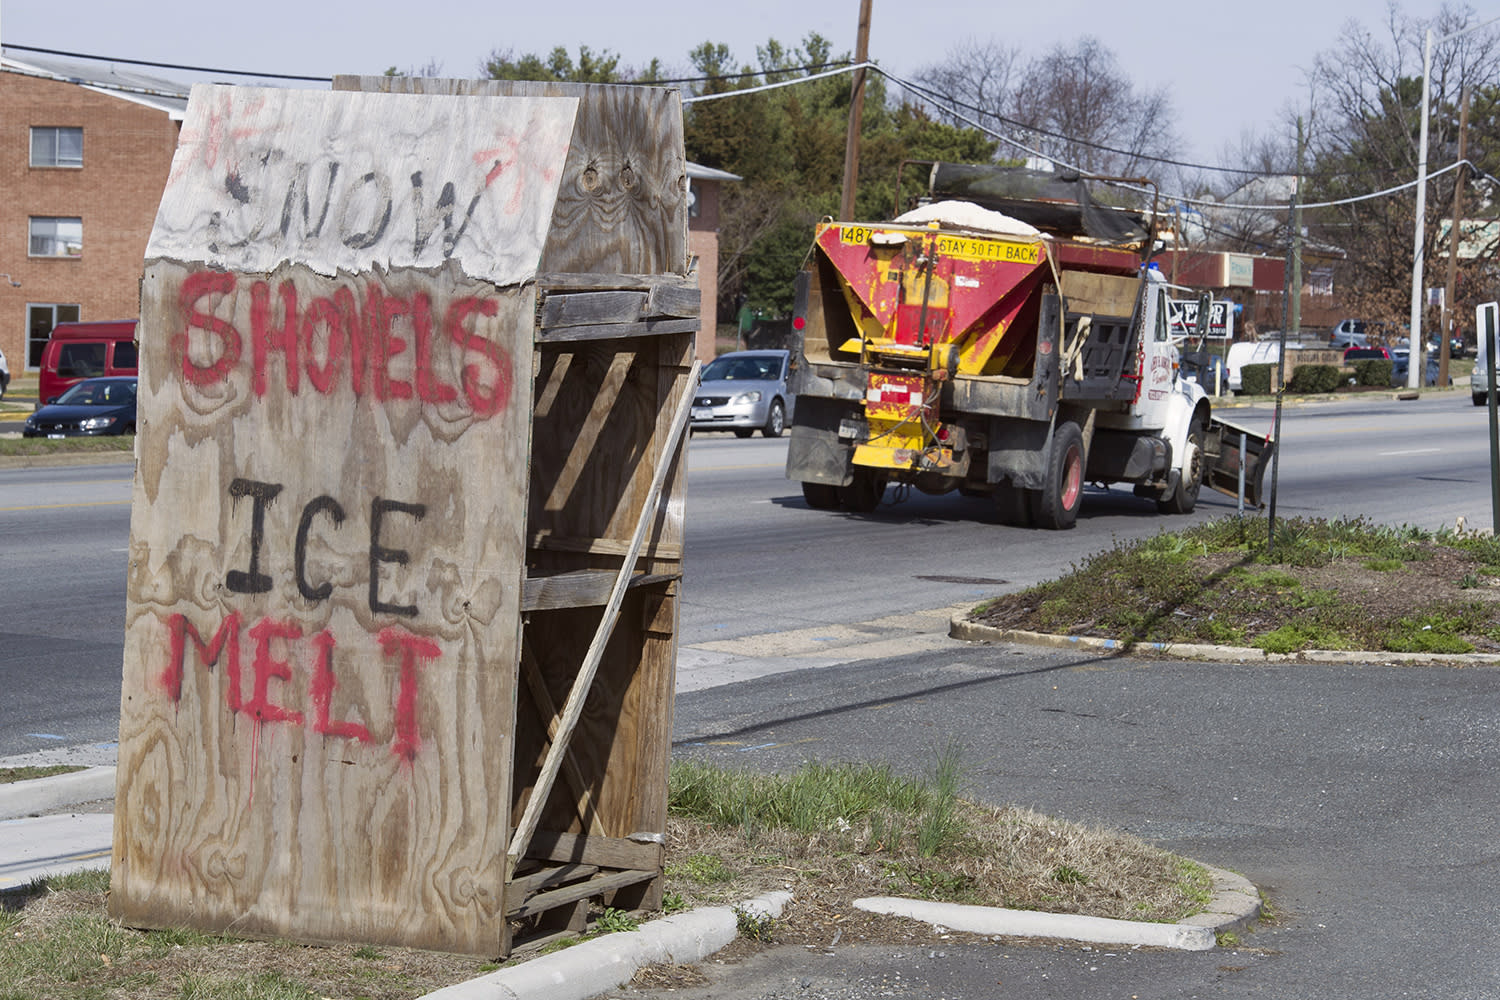 <p>A snow plow passes a sign at a garden supply store along in Alexandria, Va., Monday, March 13, 2017, in preparation of an East Coast snow storm. The mid-Atlantic is preparing for a late-season storm that is expected to bring significant snowfall to much of the region. Crews are already pretreating roads around the region in anticipation of snow that's expected to start falling Monday evening. (Cliff Owen/AP) </p>